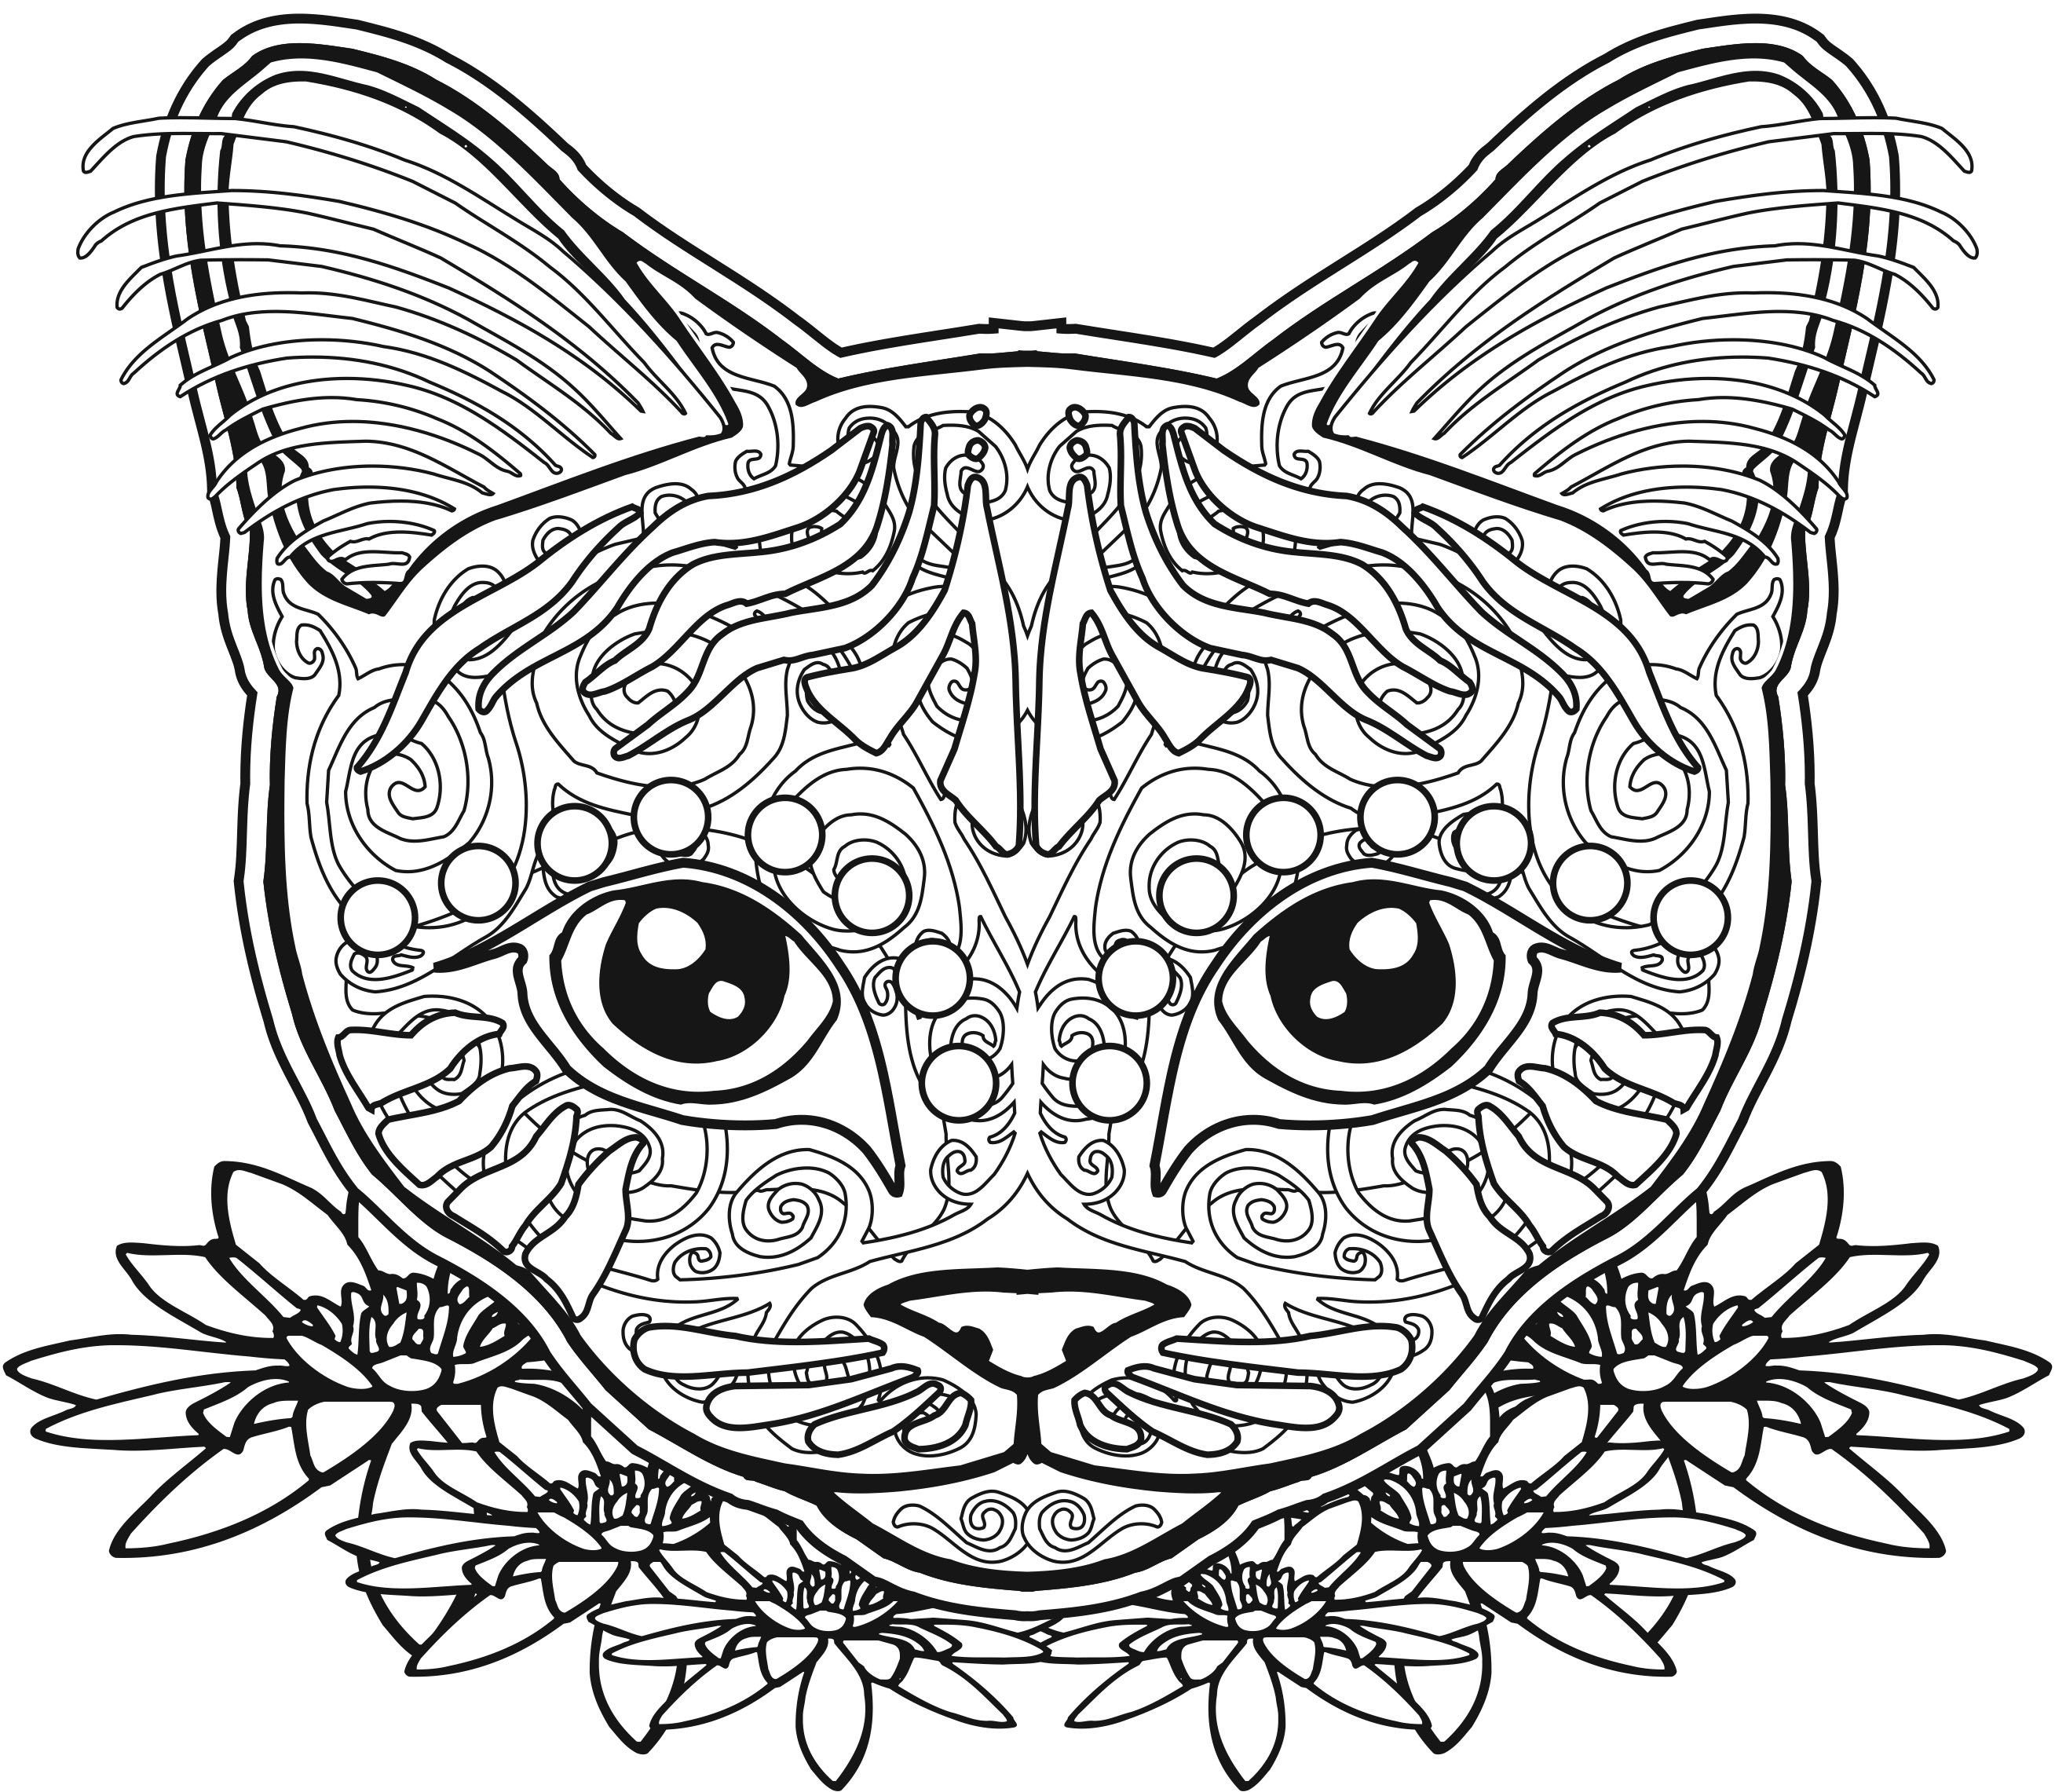 Pin By Elena On Colouring Pages 02 Cat Coloring Page Animal Coloring Pages Cat Colors [ 2282 x 2617 Pixel ]